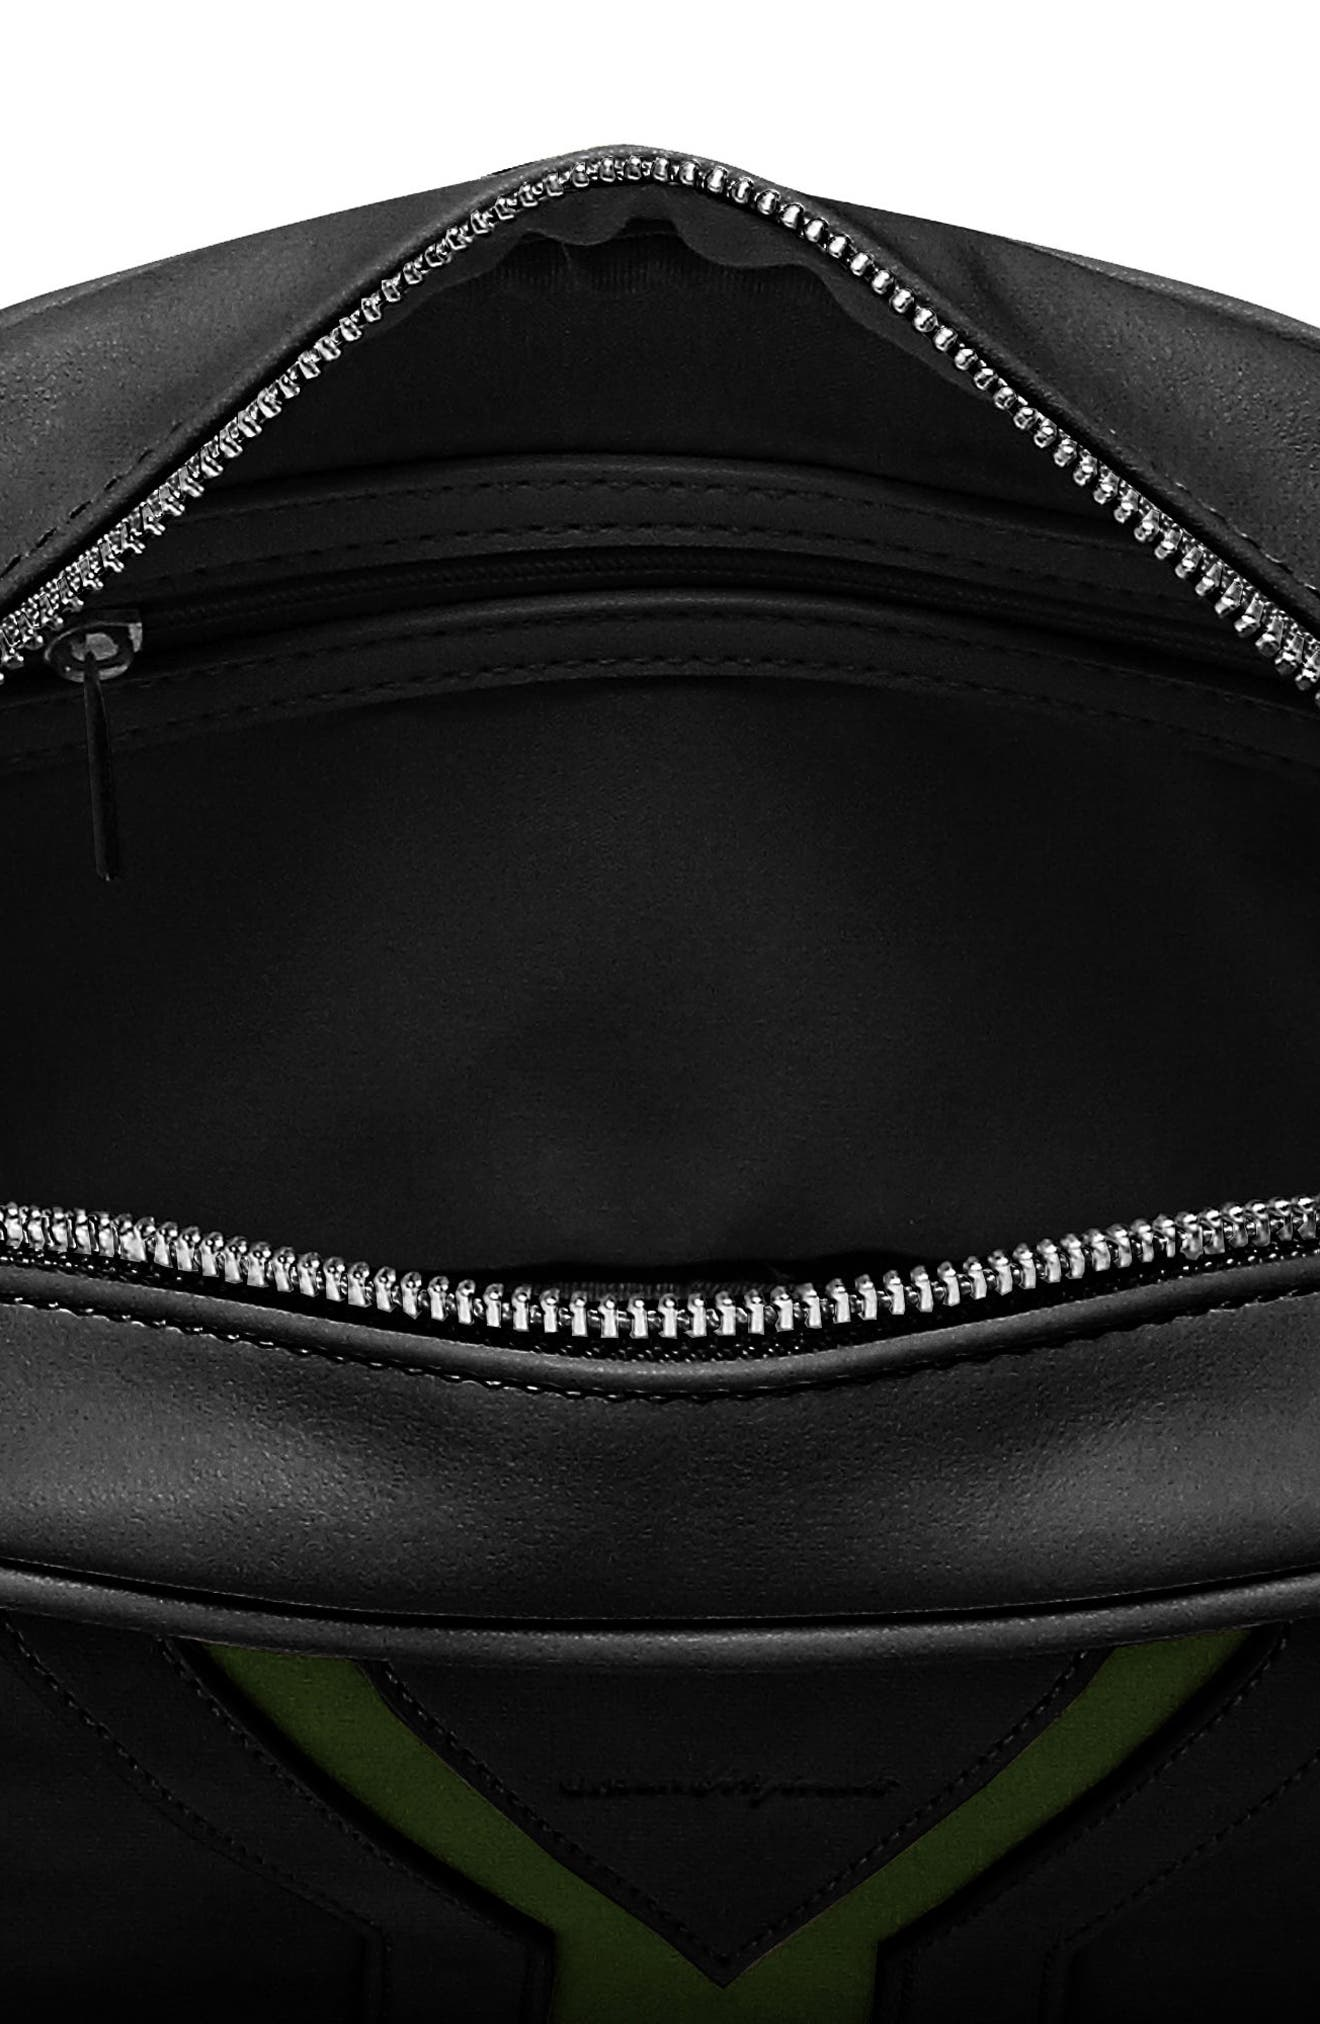 Late Night Vegan Leather Crossbody Bag,                             Alternate thumbnail 3, color,                             Black/ Green